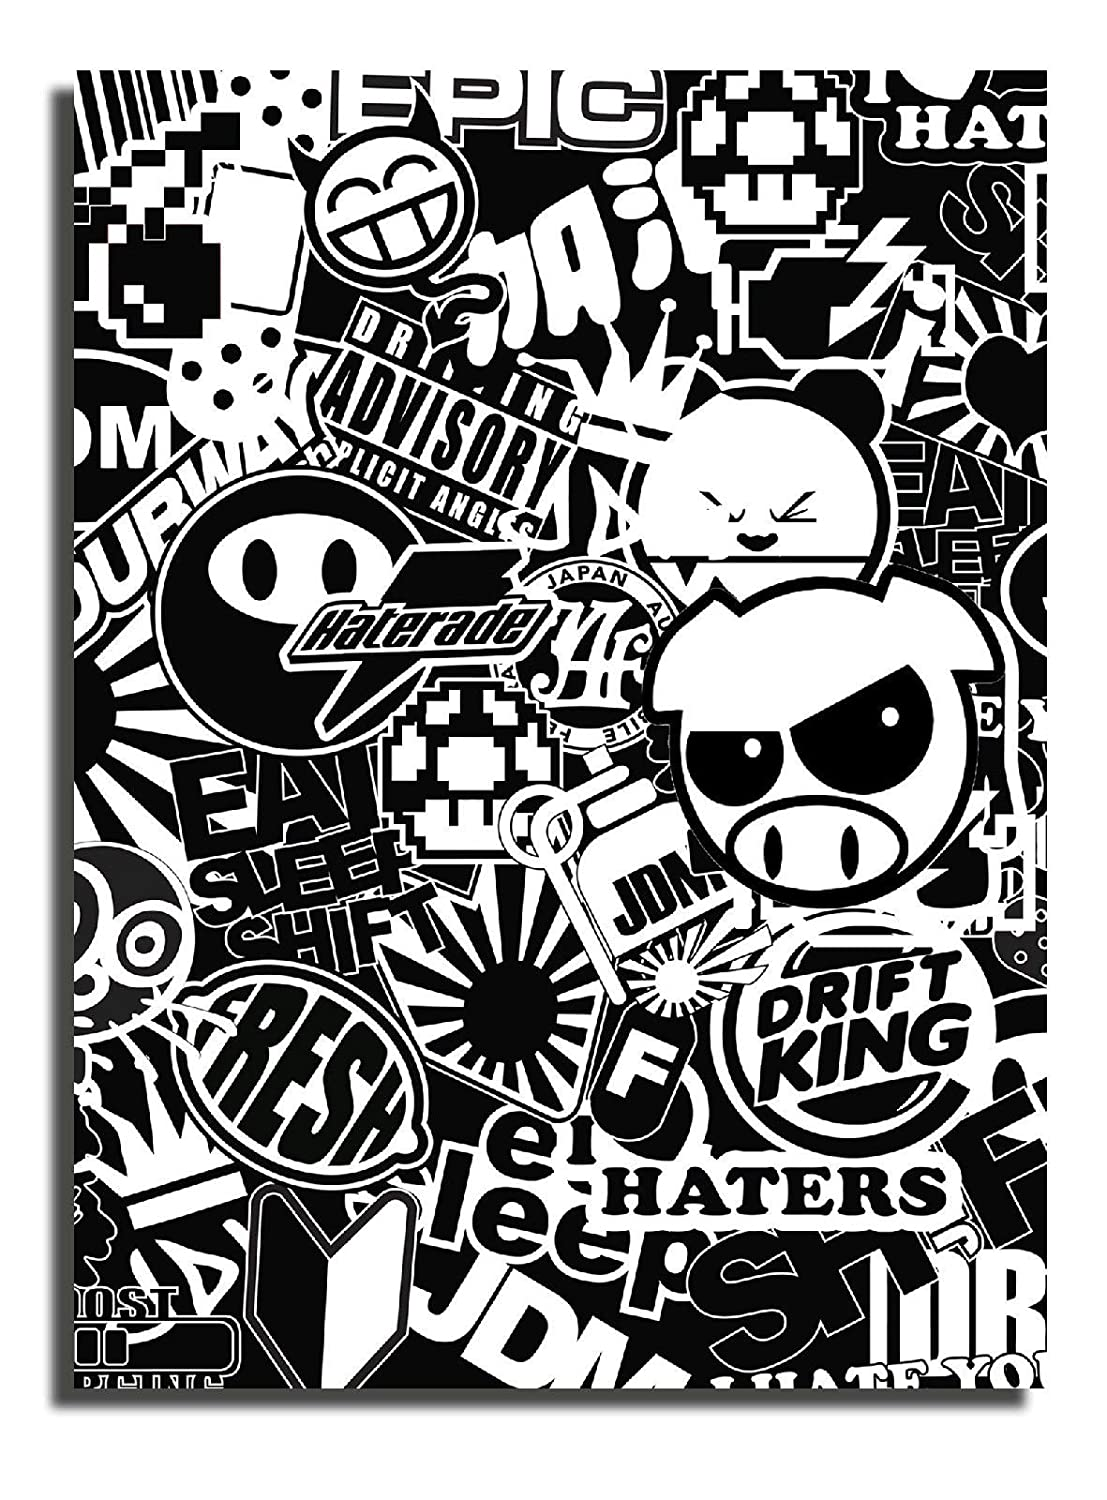 X1 jdm black and white sticker bomb wrap sheet vinyl d k 10 5 inches x 7 5 inches by owntheavenue amazon co uk kitchen home